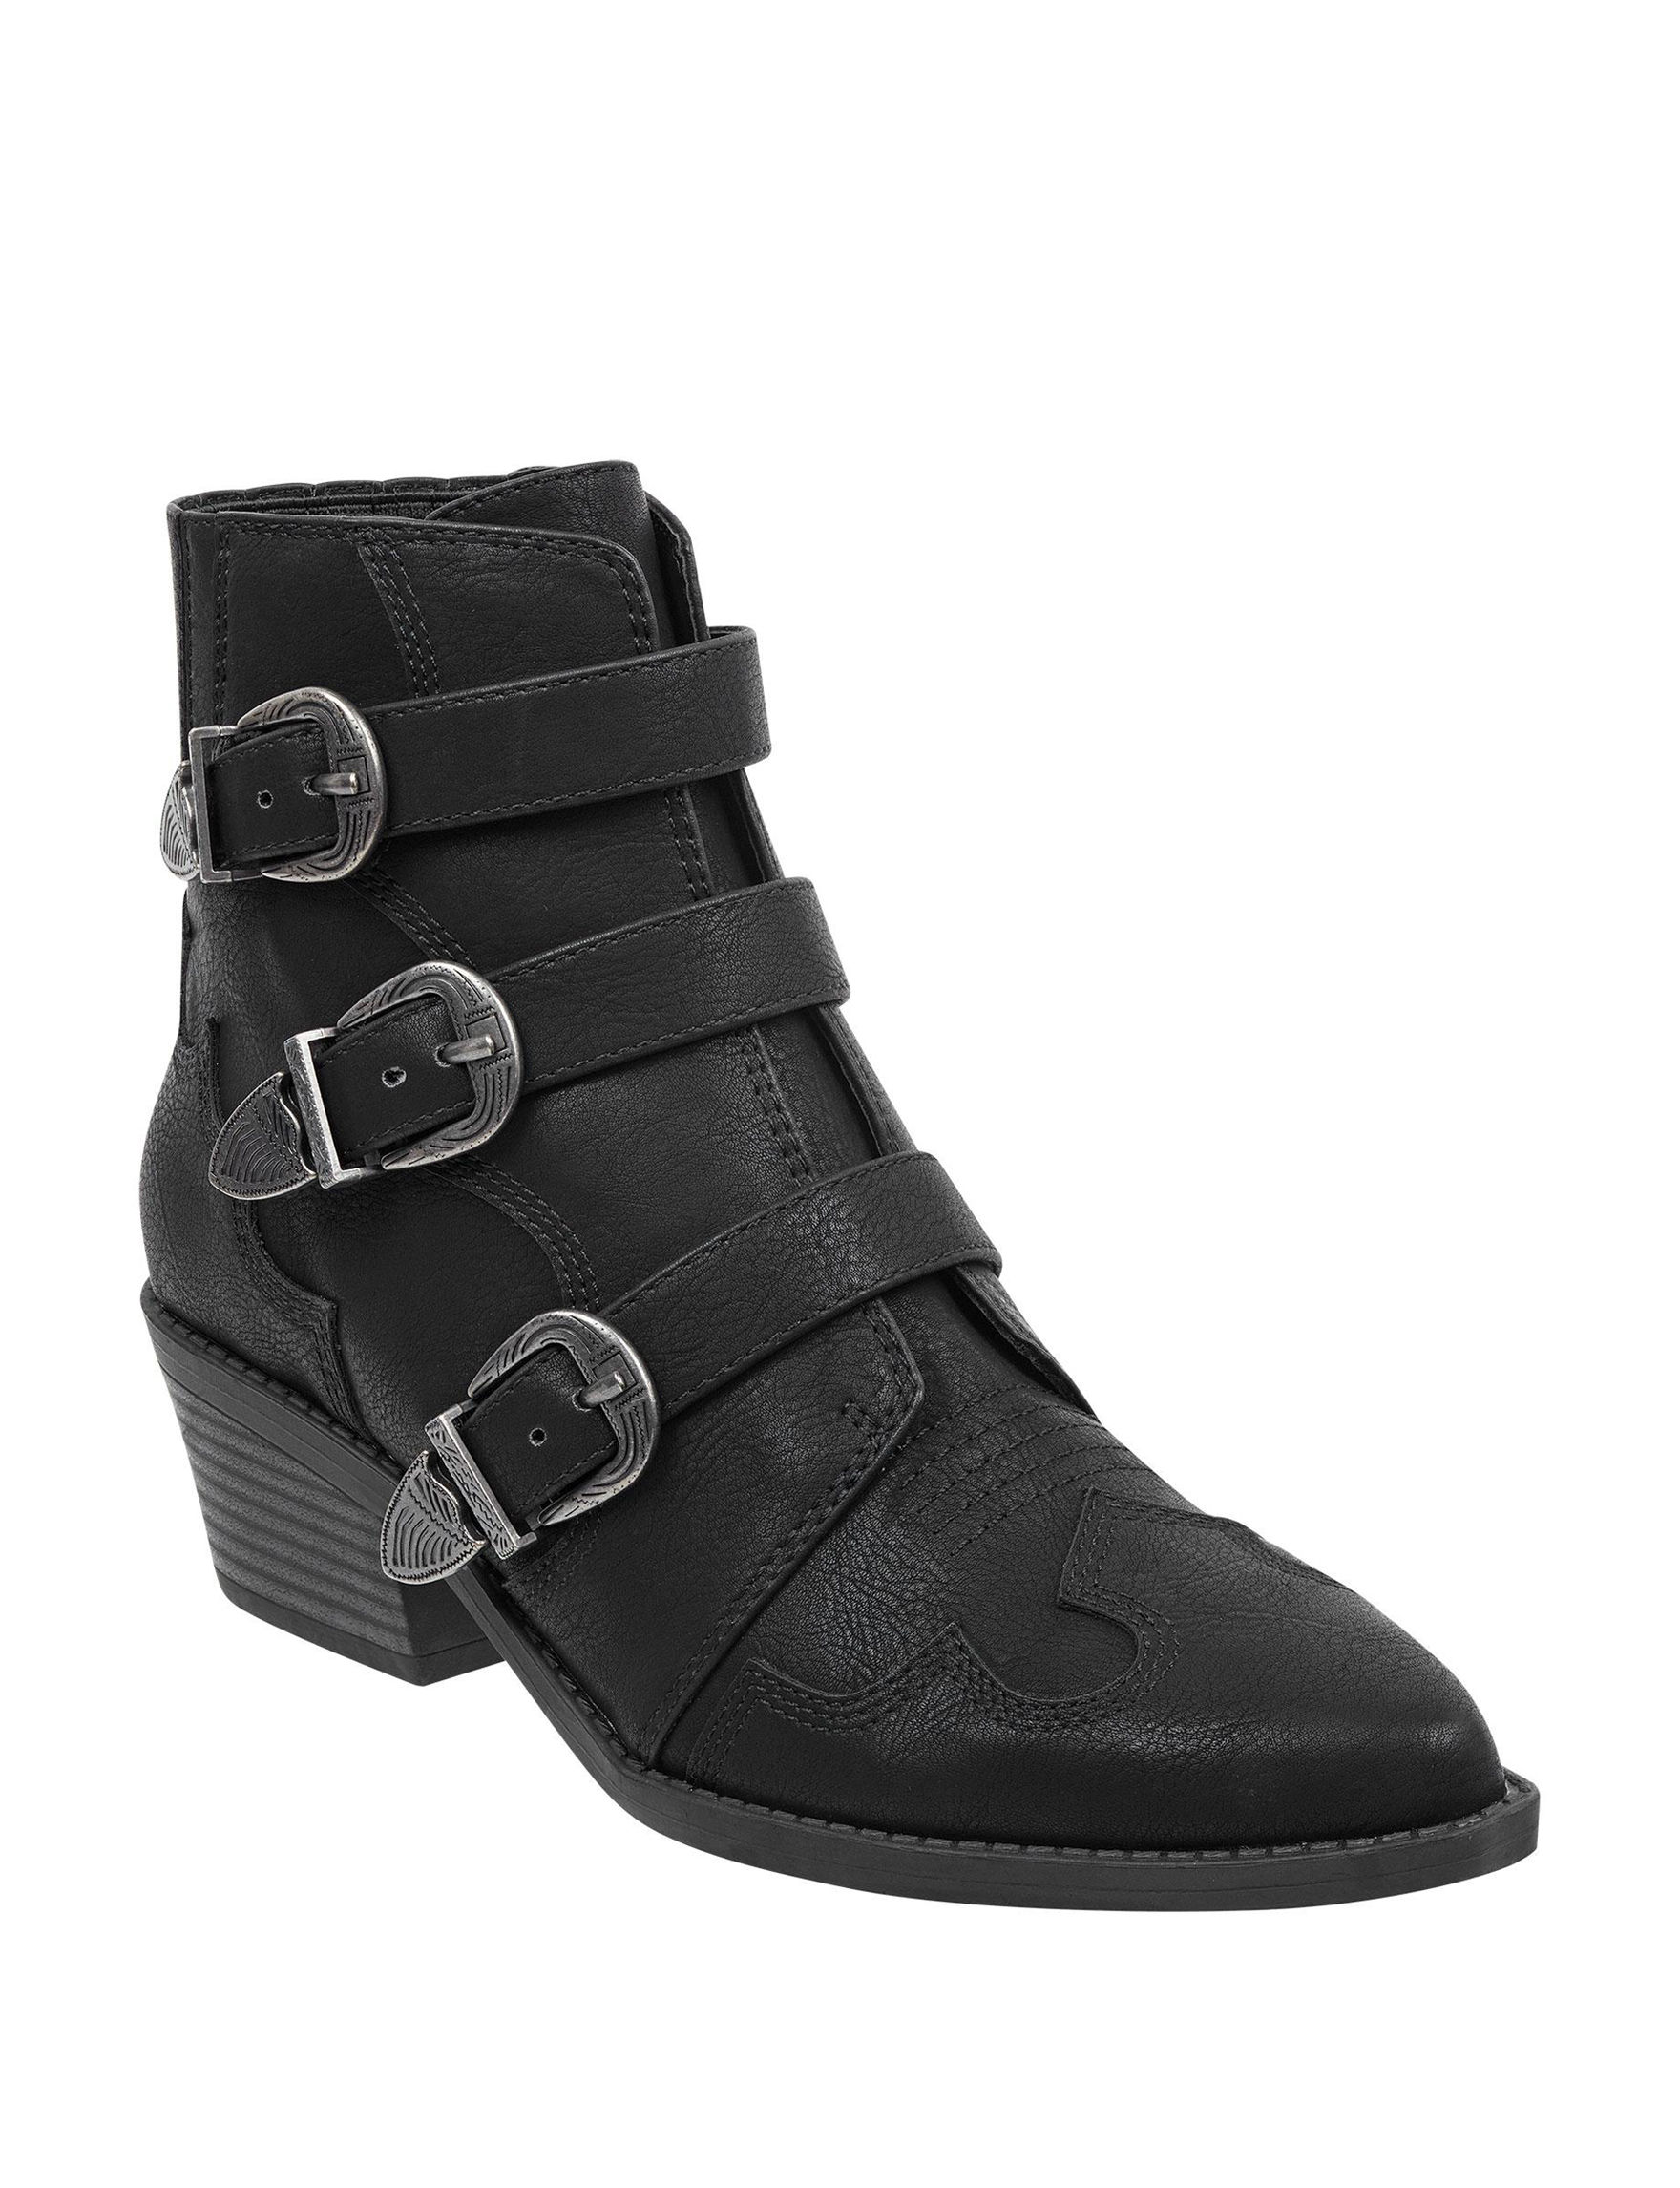 Indigo Rd. Black Ankle Boots & Booties